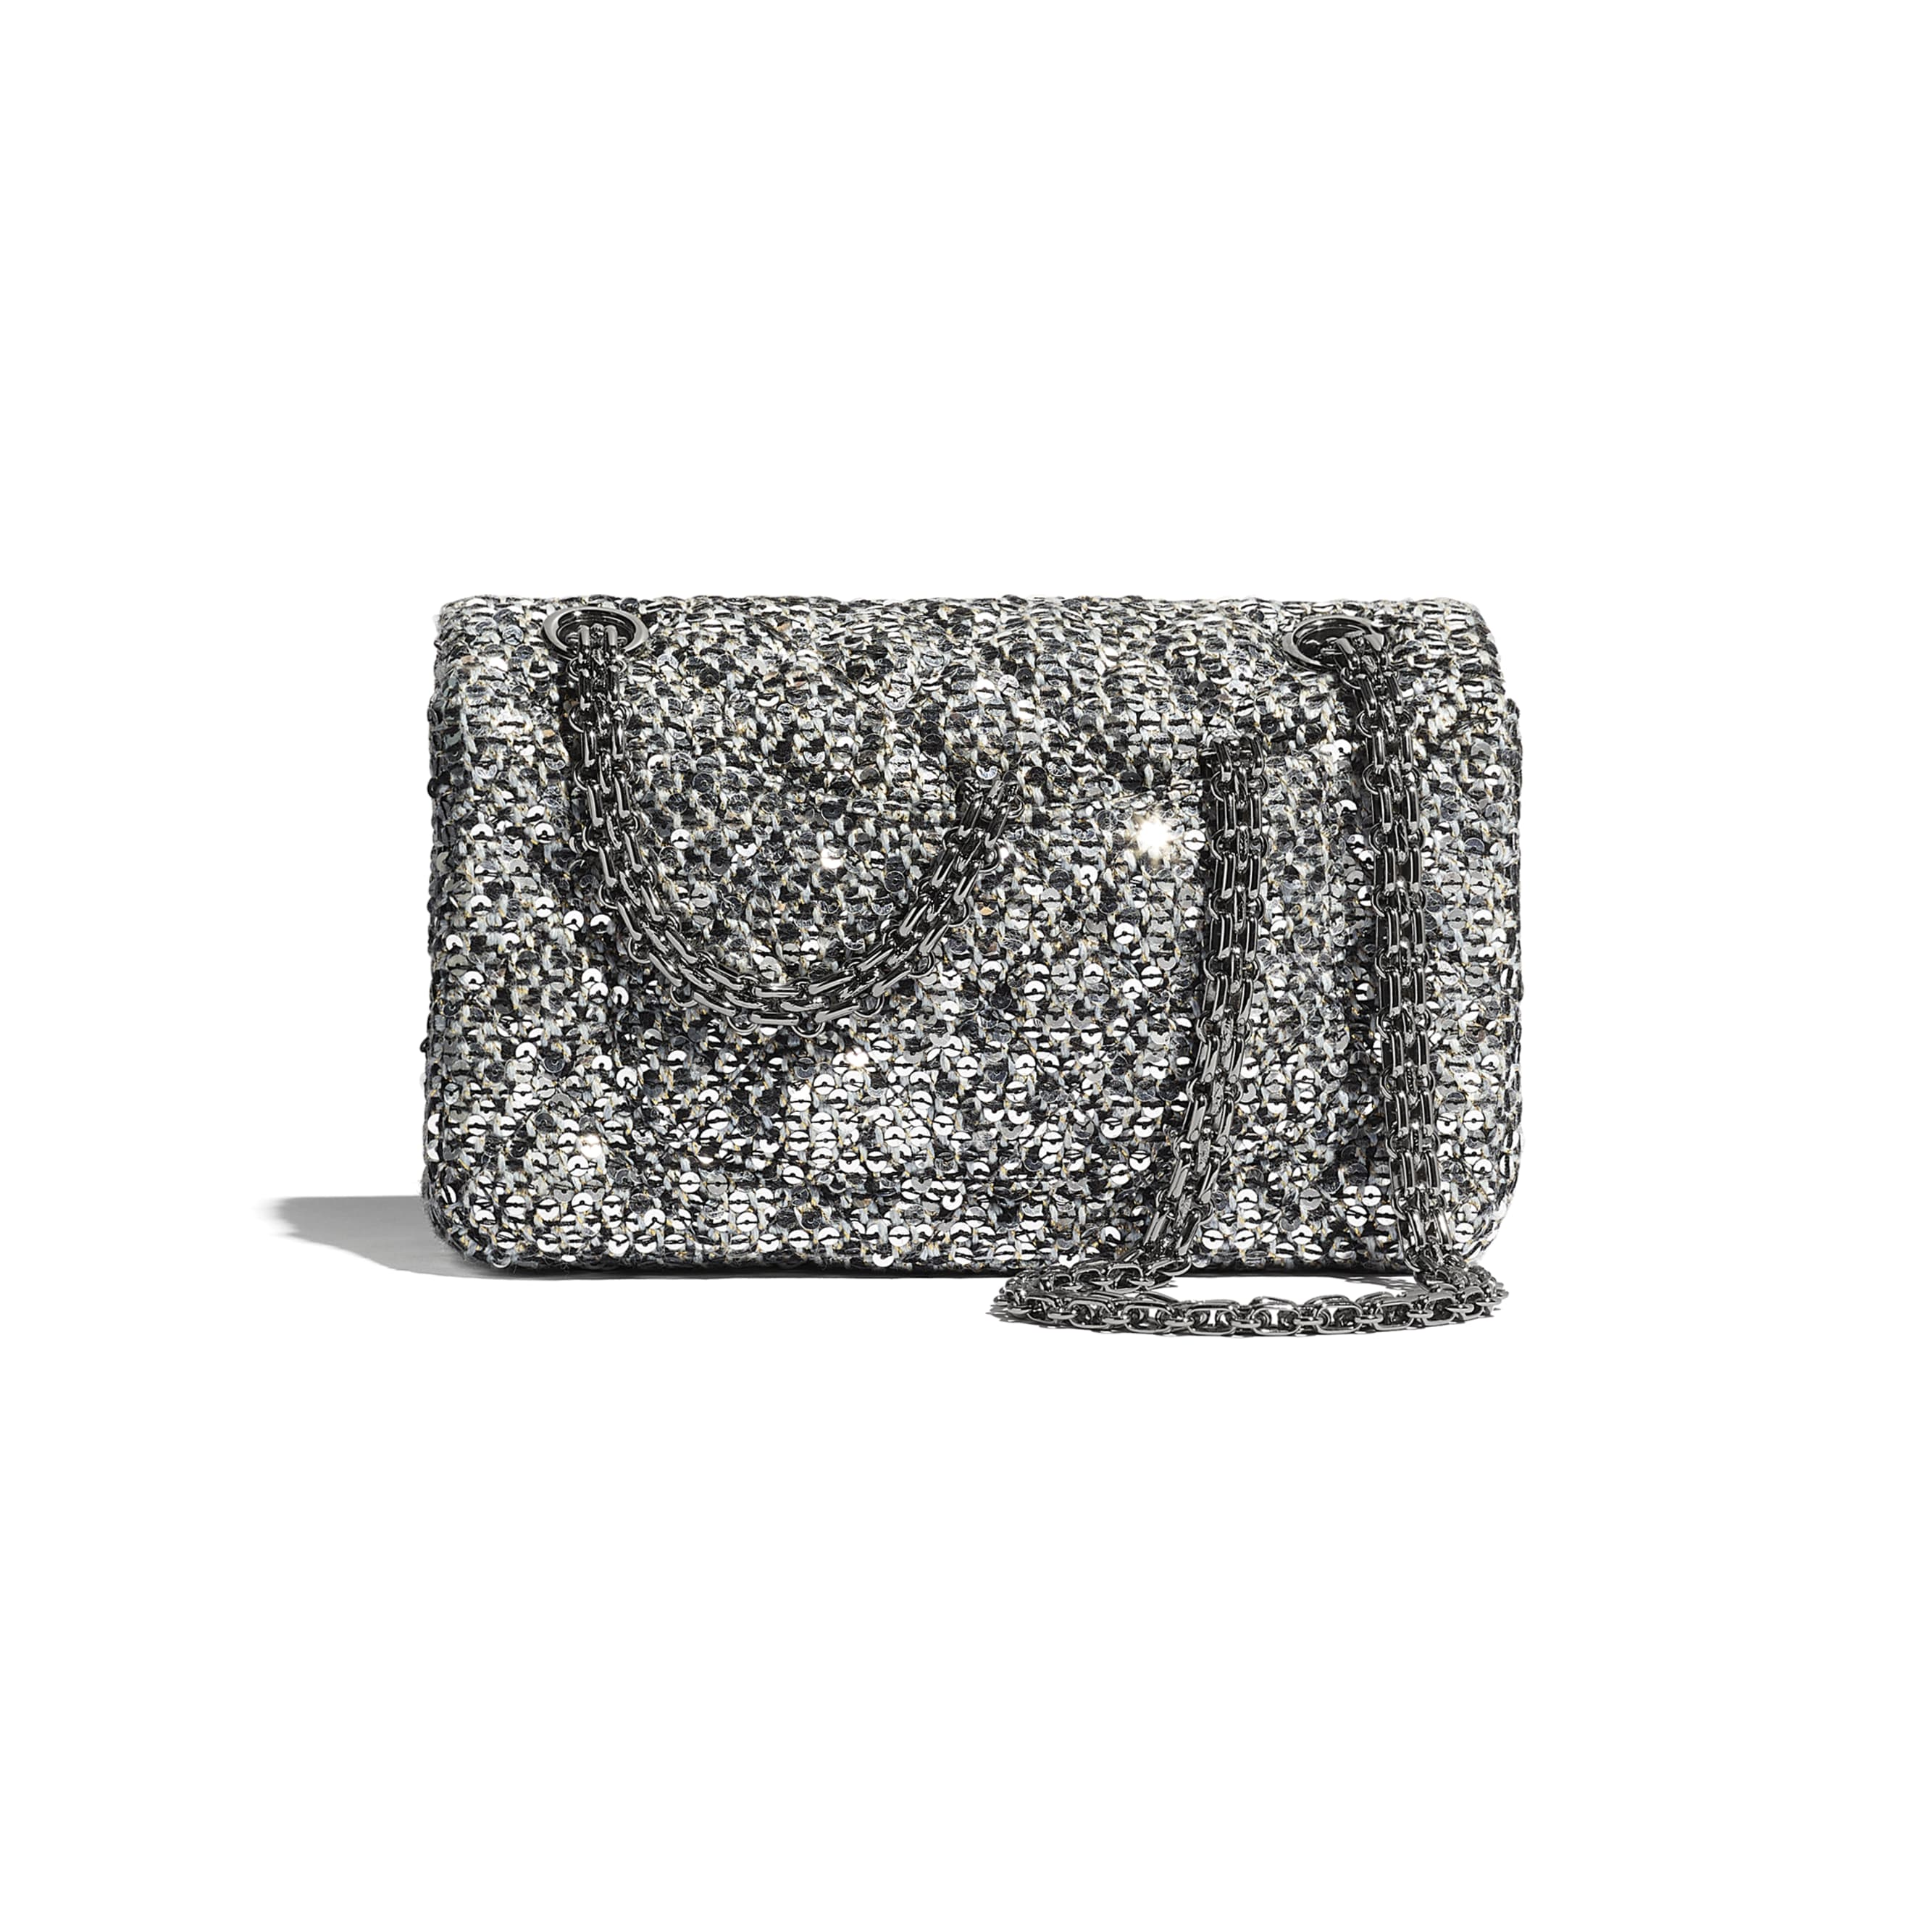 Small 2.55 Handbag - Silver, Black & Gold - Tweed, Sequins & Ruthenium-Finish Metal - CHANEL - Alternative view - see standard sized version